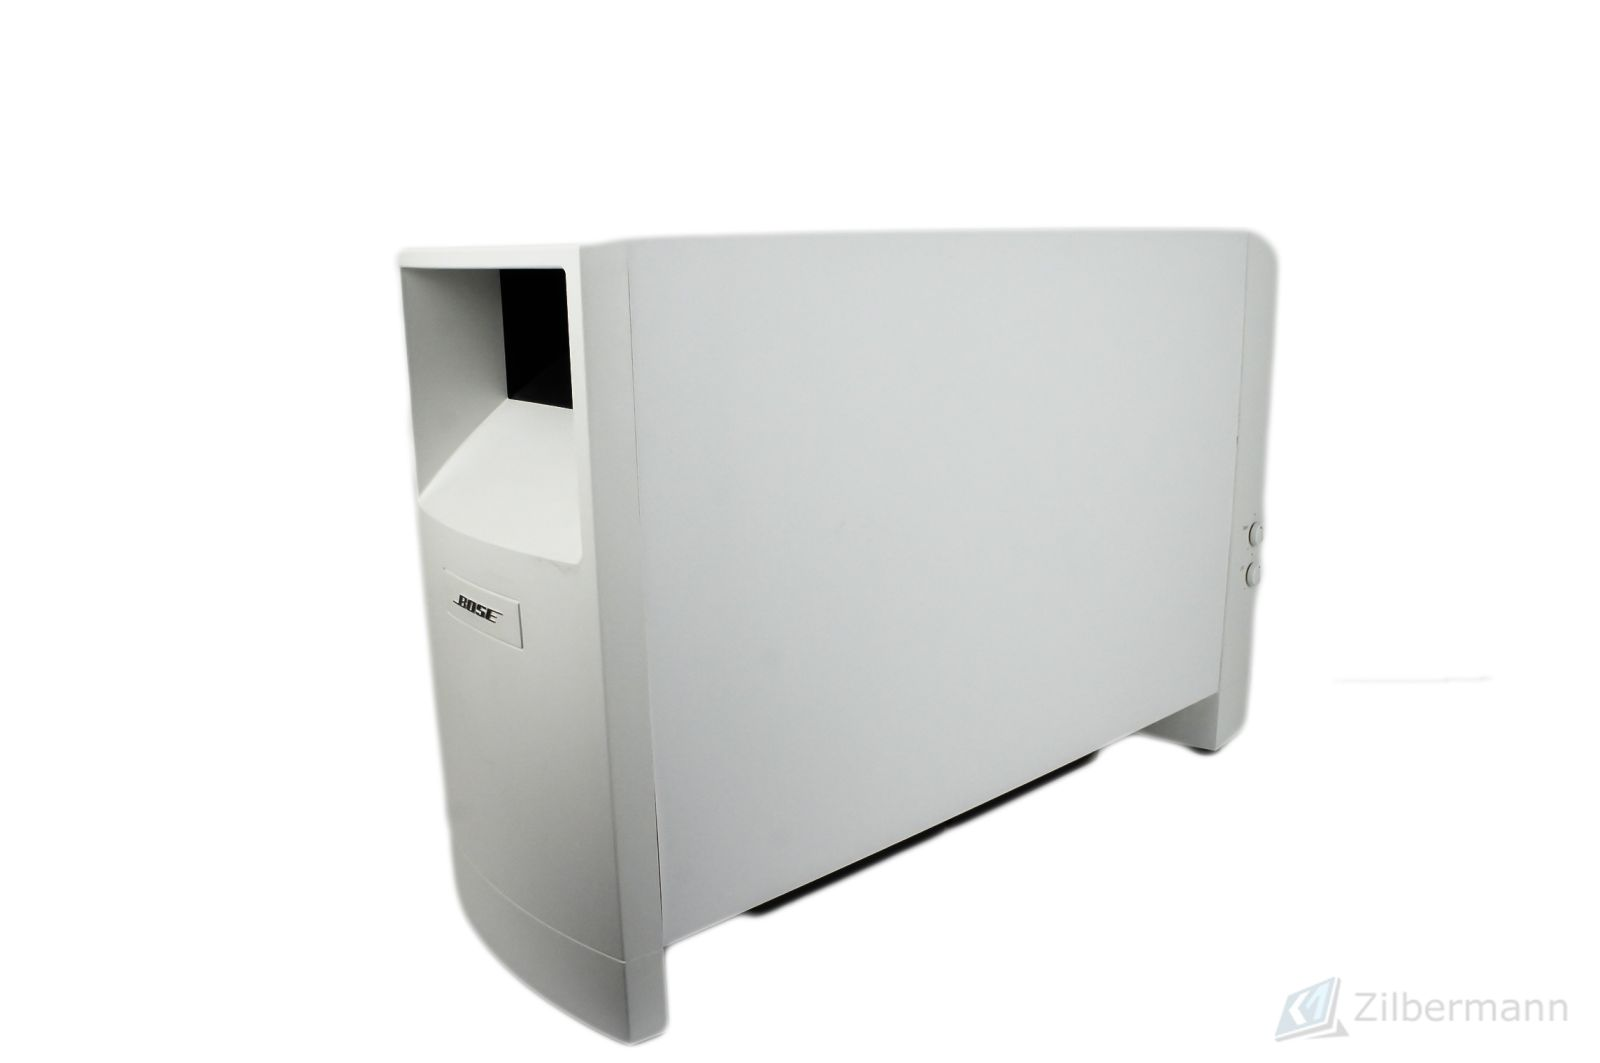 Bose_Acoustimass_10_Series_III_5.1_Powered_Subwoofer_Aktiv_Weiss_03